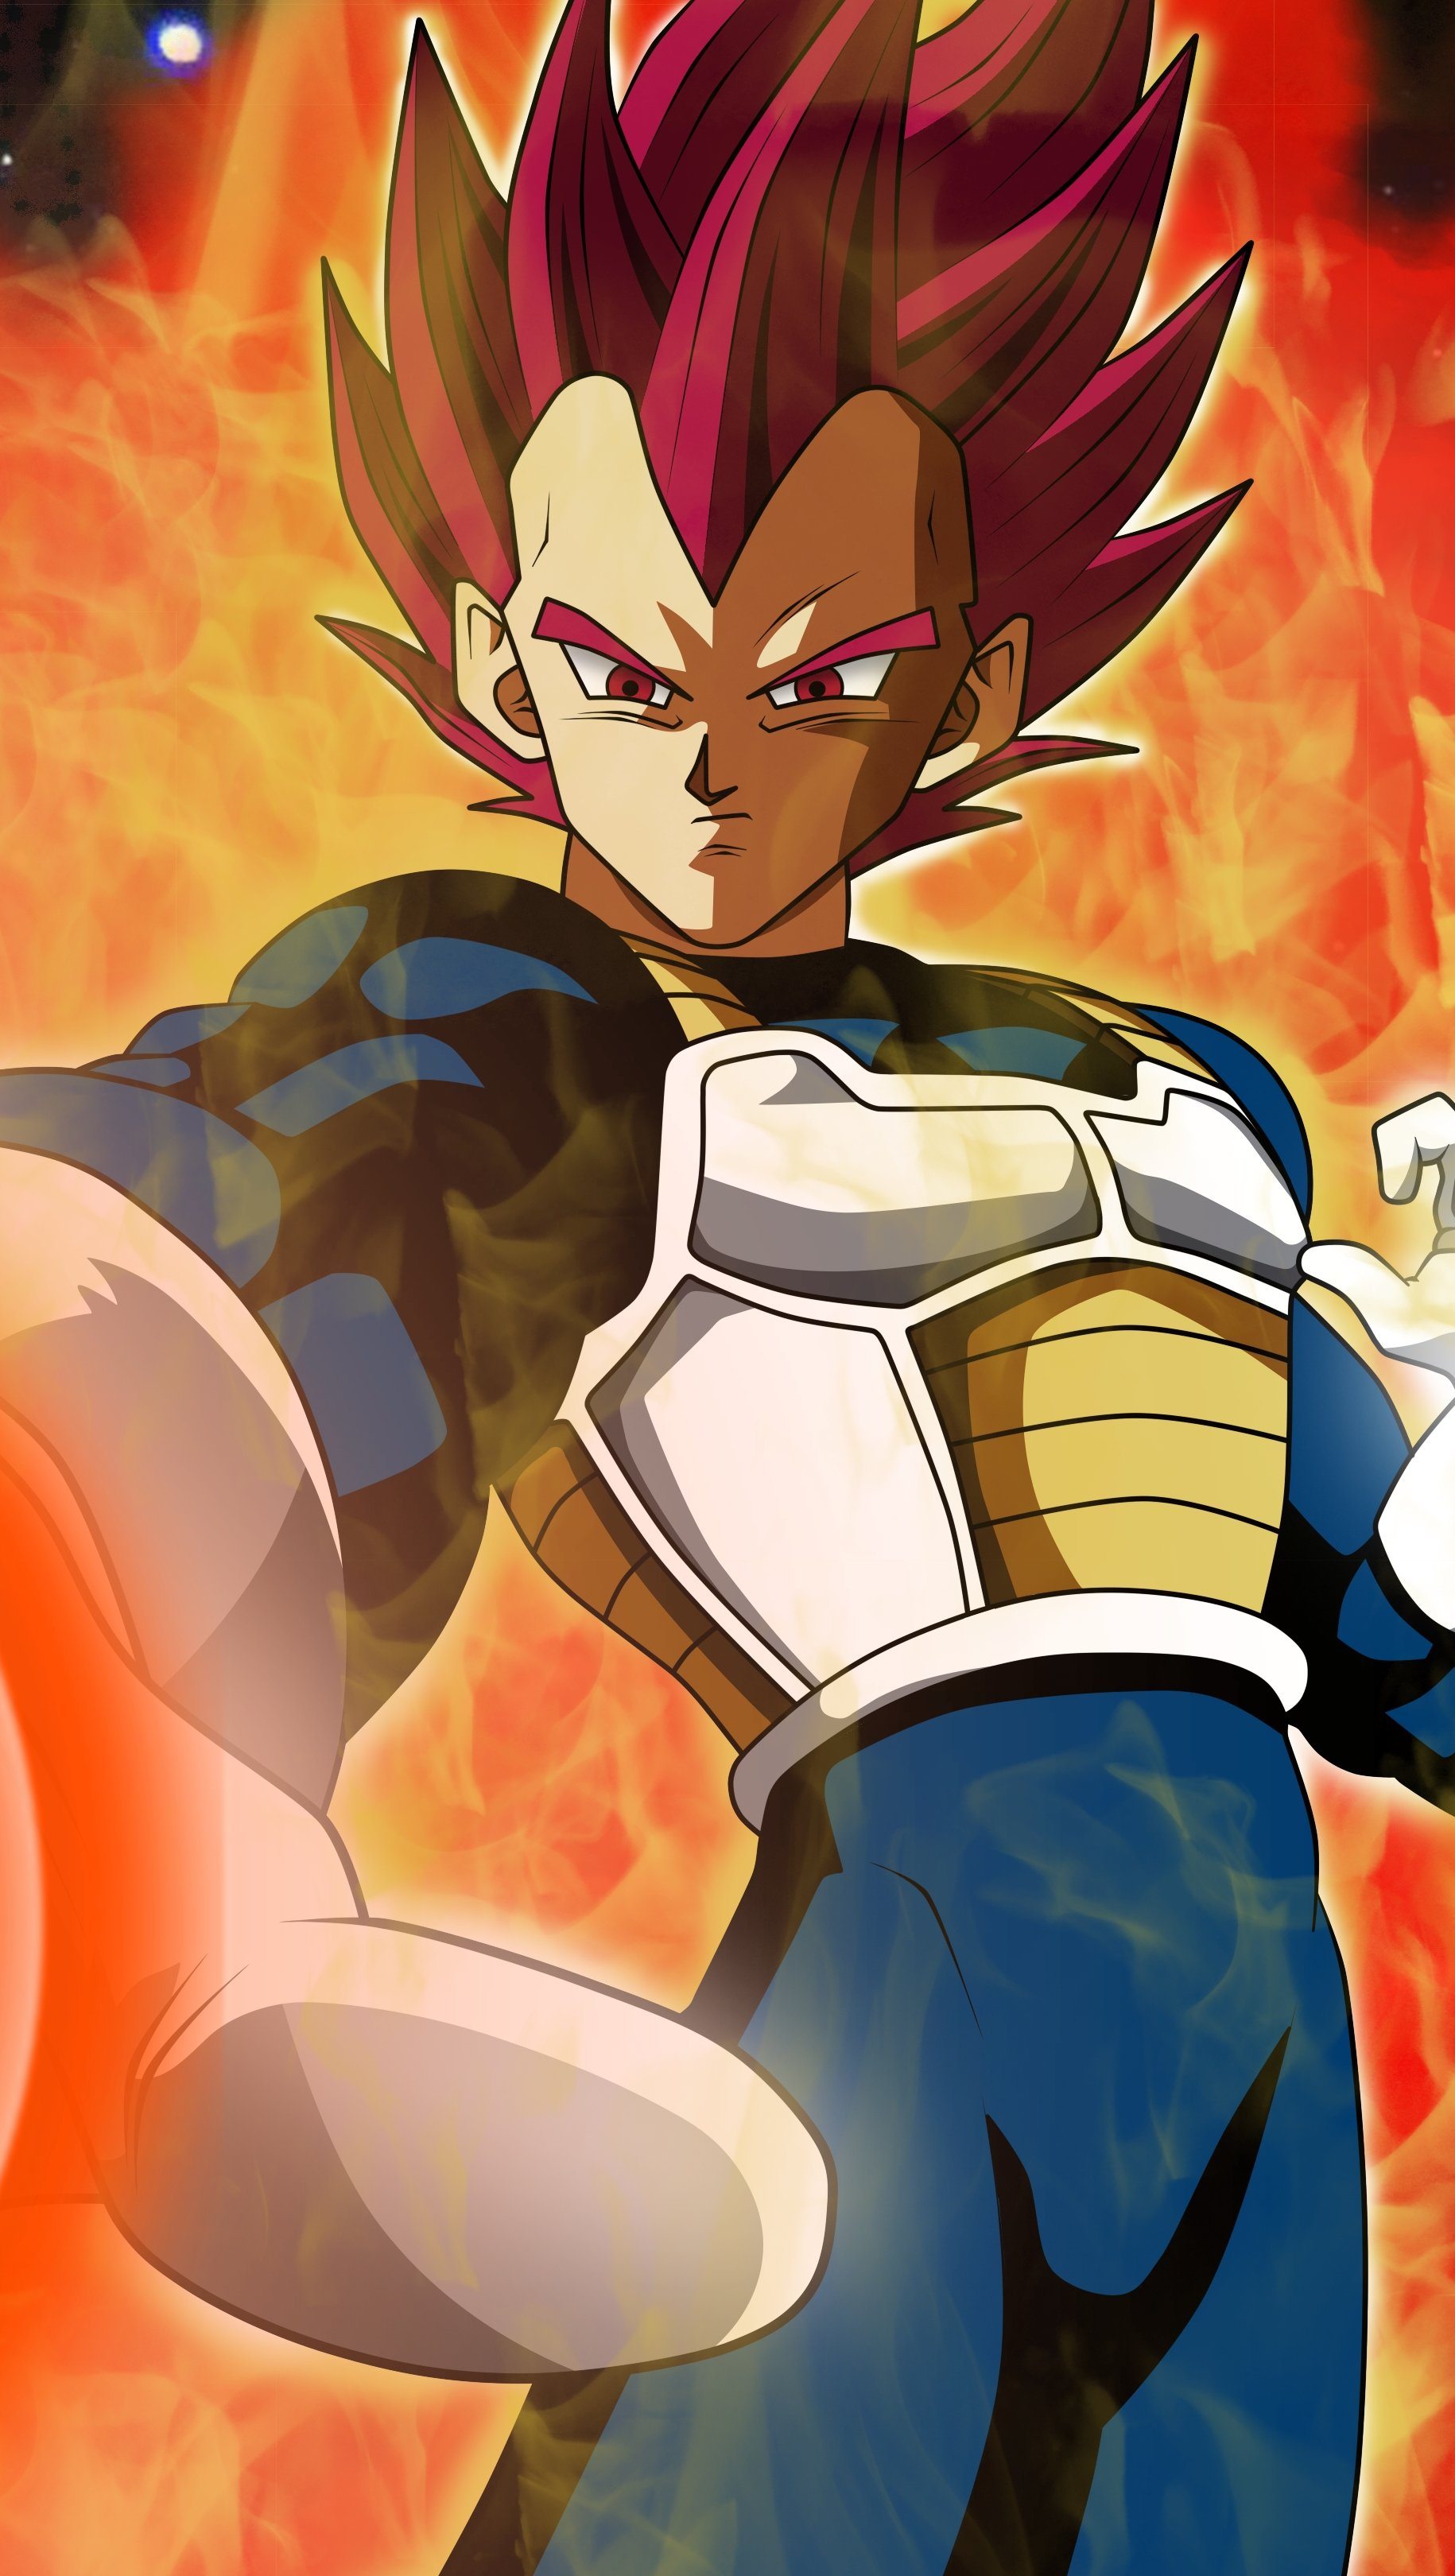 Anime Wallpaper Vegeta SSJG Super Saiyan God from Dragon Ball Vertical